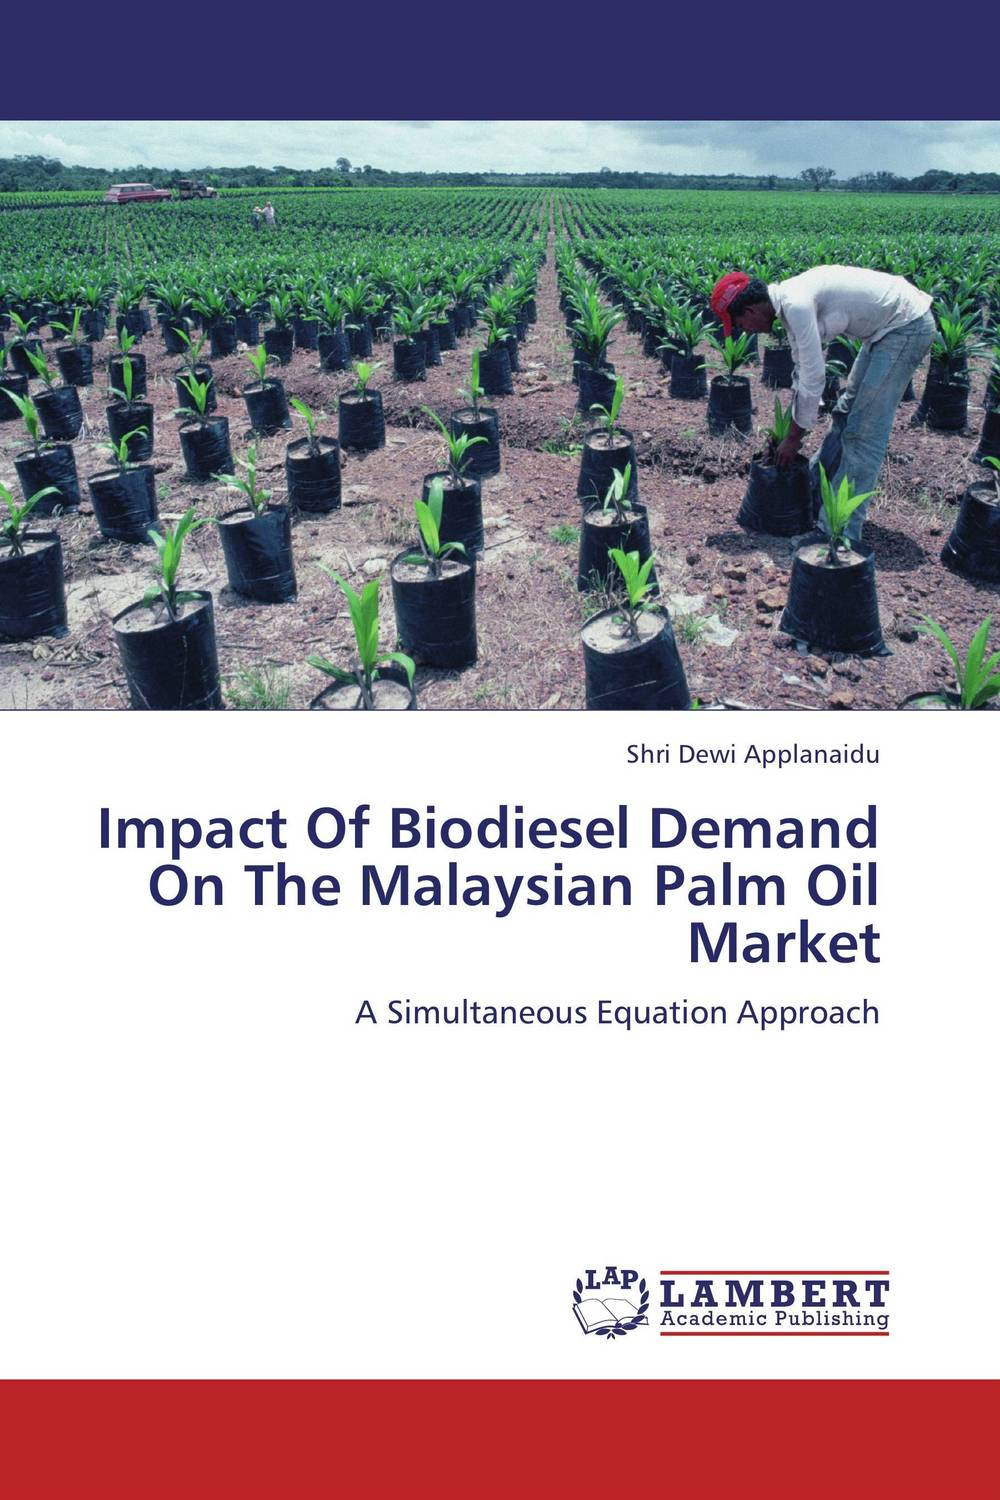 Impact Of Biodiesel Demand On The Malaysian Palm Oil Market utilization of palm oil mill wastes